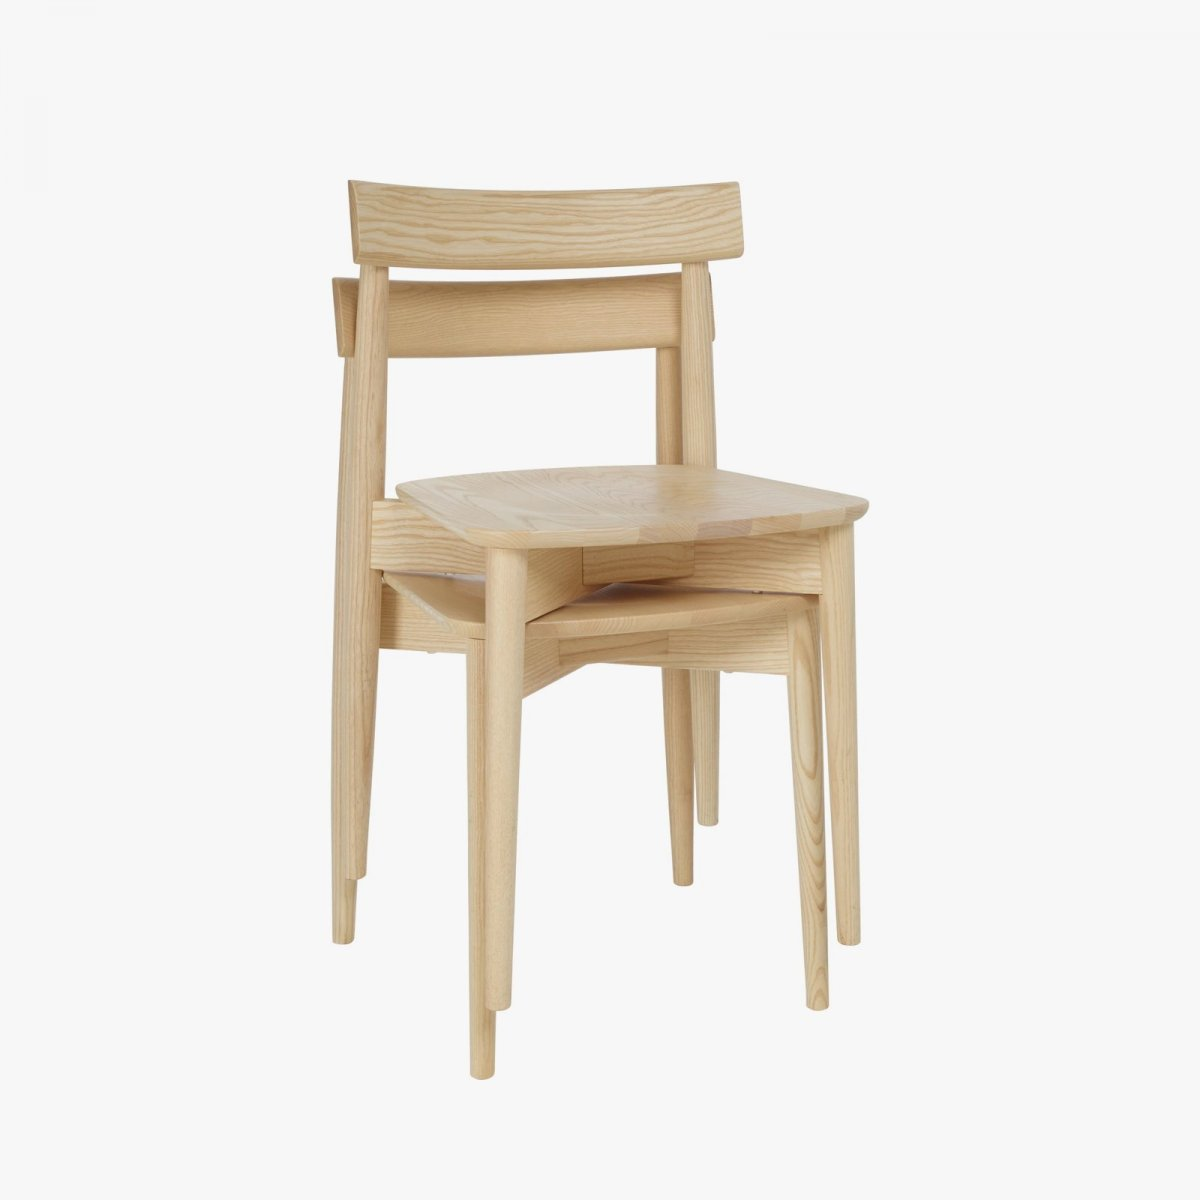 Lara Chair, stacked.